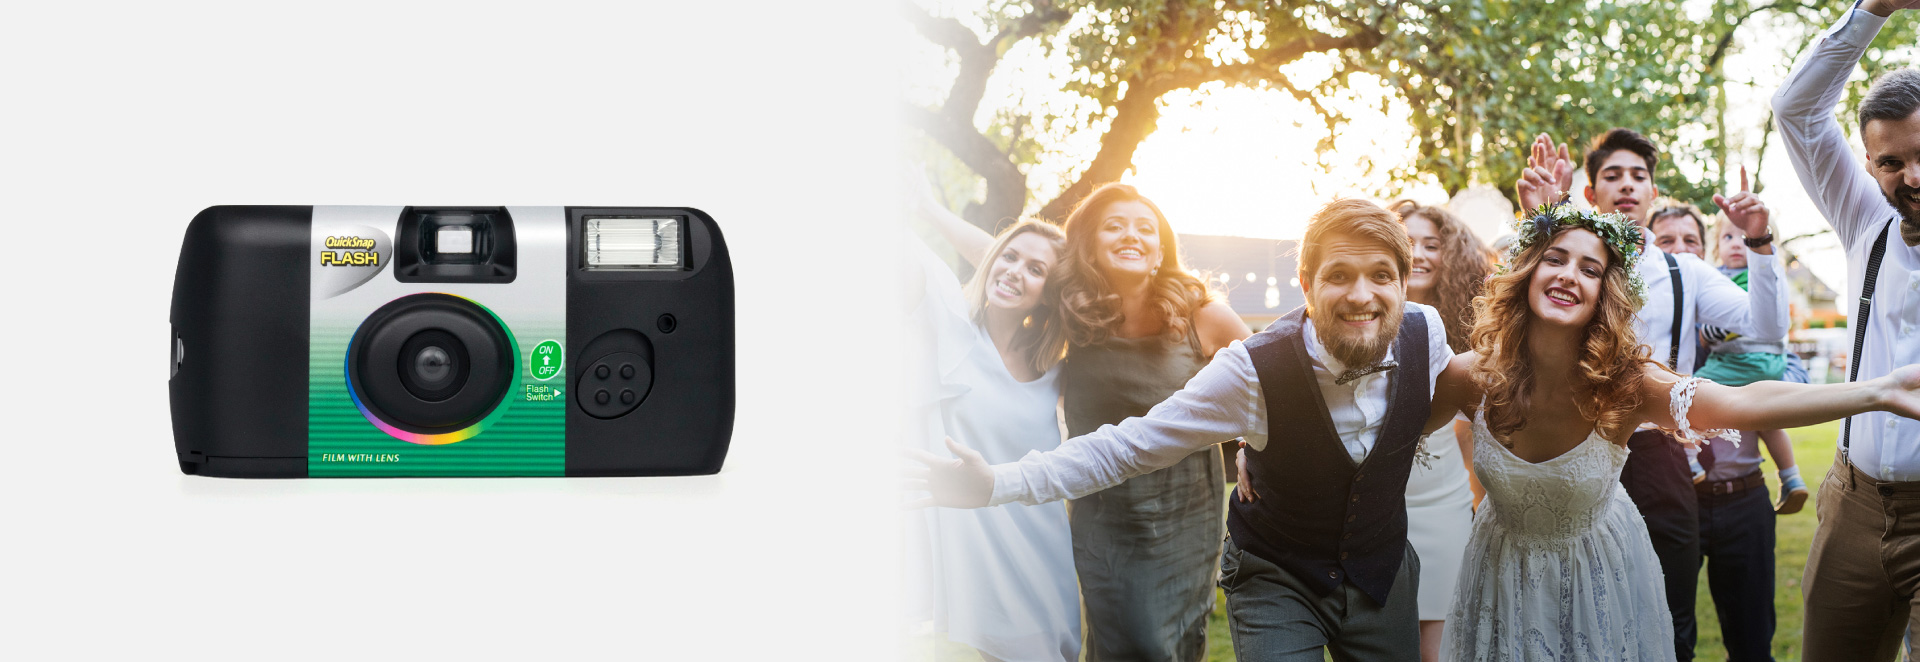 [photo] Quicksnap Flash on the left and a wedding party group picture on the right